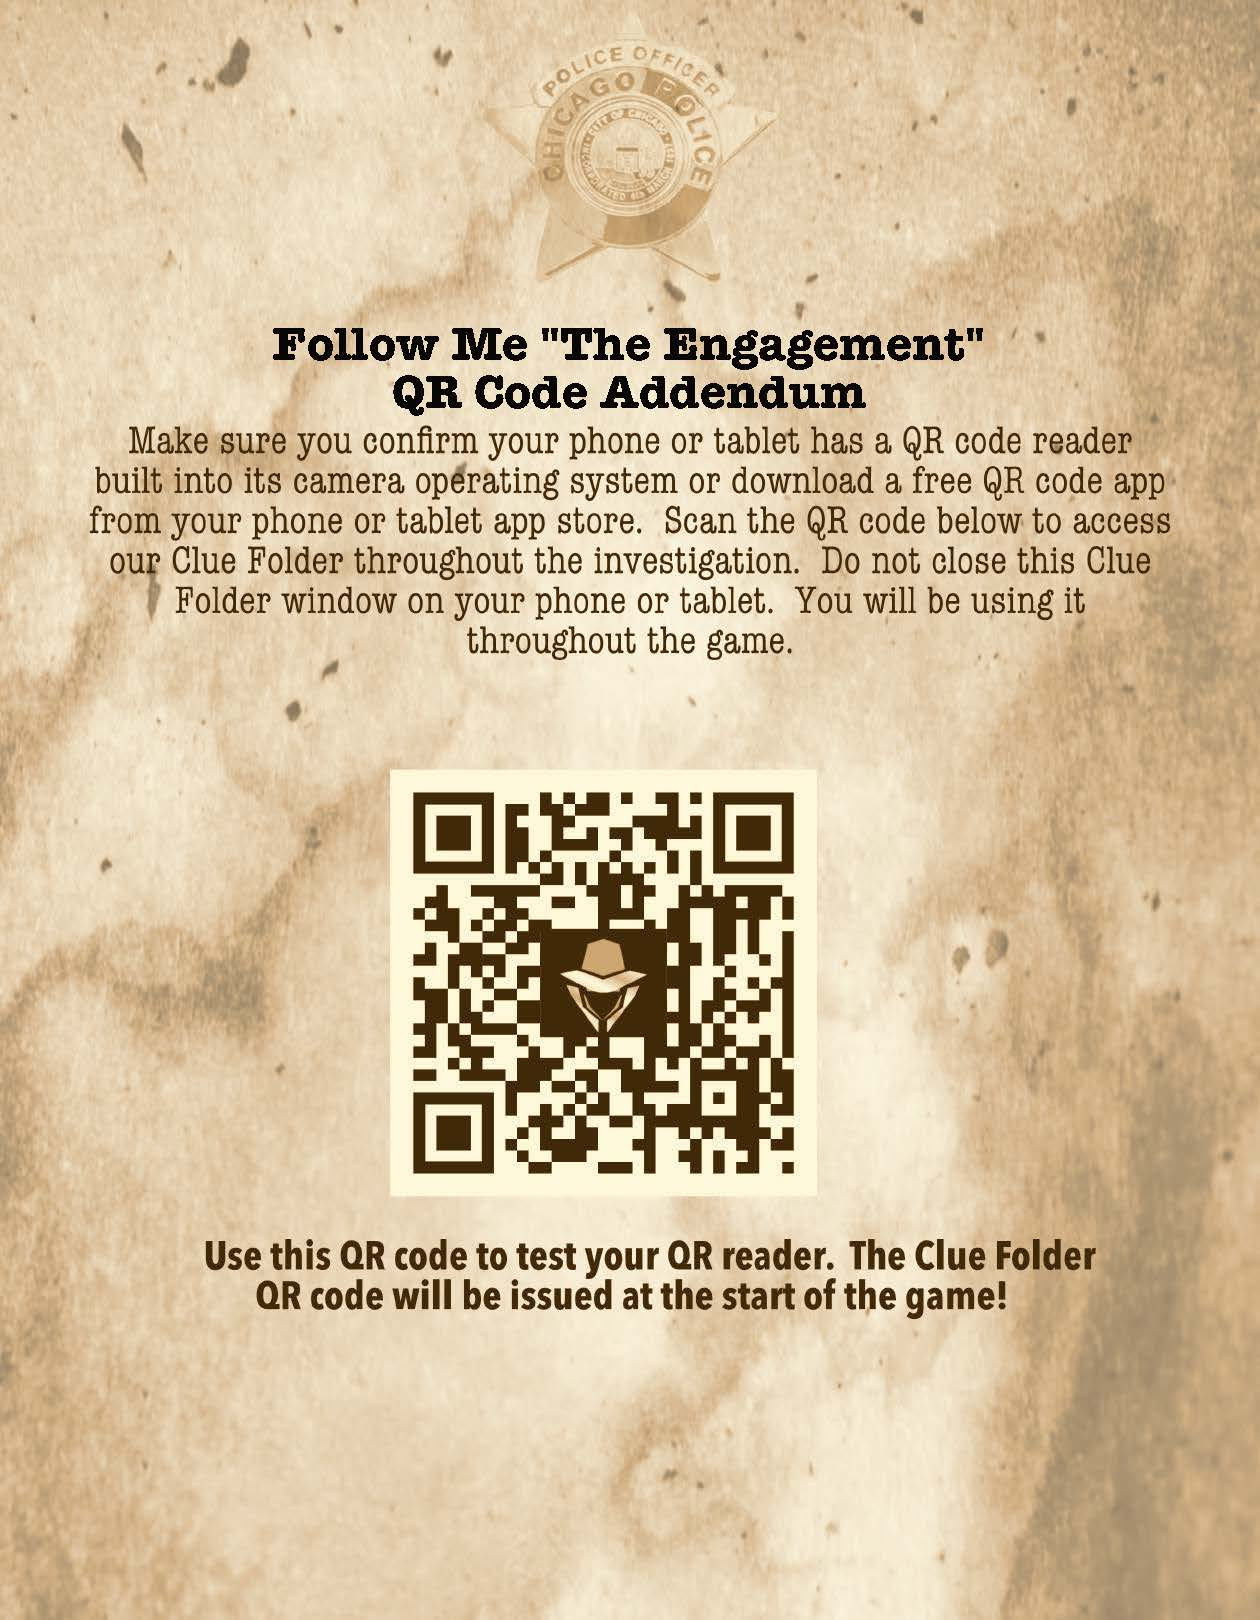 Escape Room QR Code (For a text version of this document or other assistance, please email crfluker@hfcc.edu)